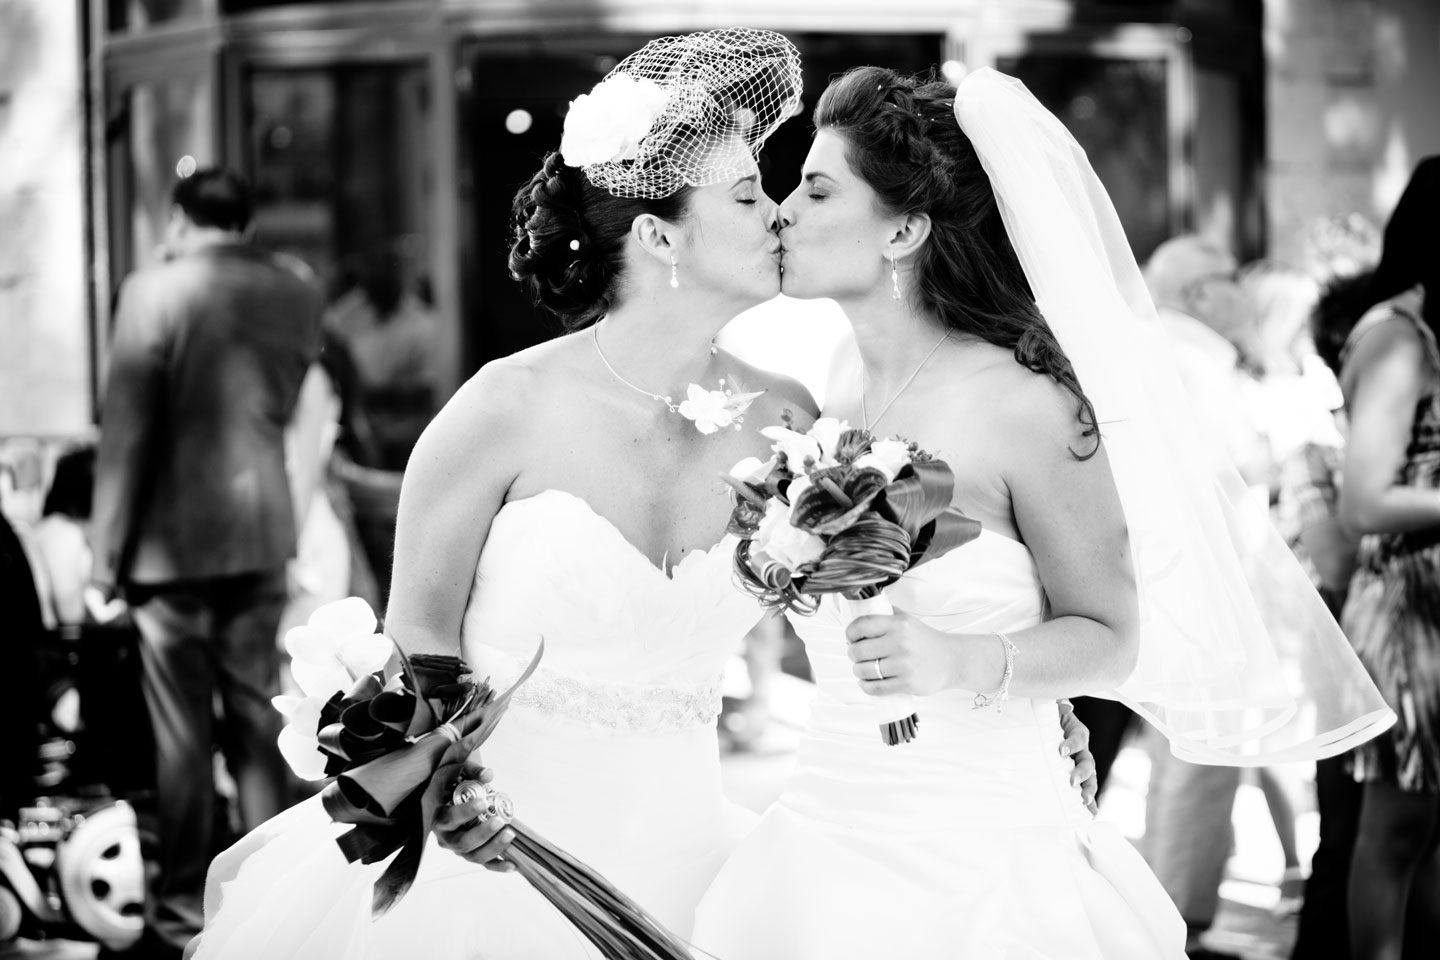 photographe-mariage-montpellier-nimes-lunel-mauguio-valergues-herault-gard-51